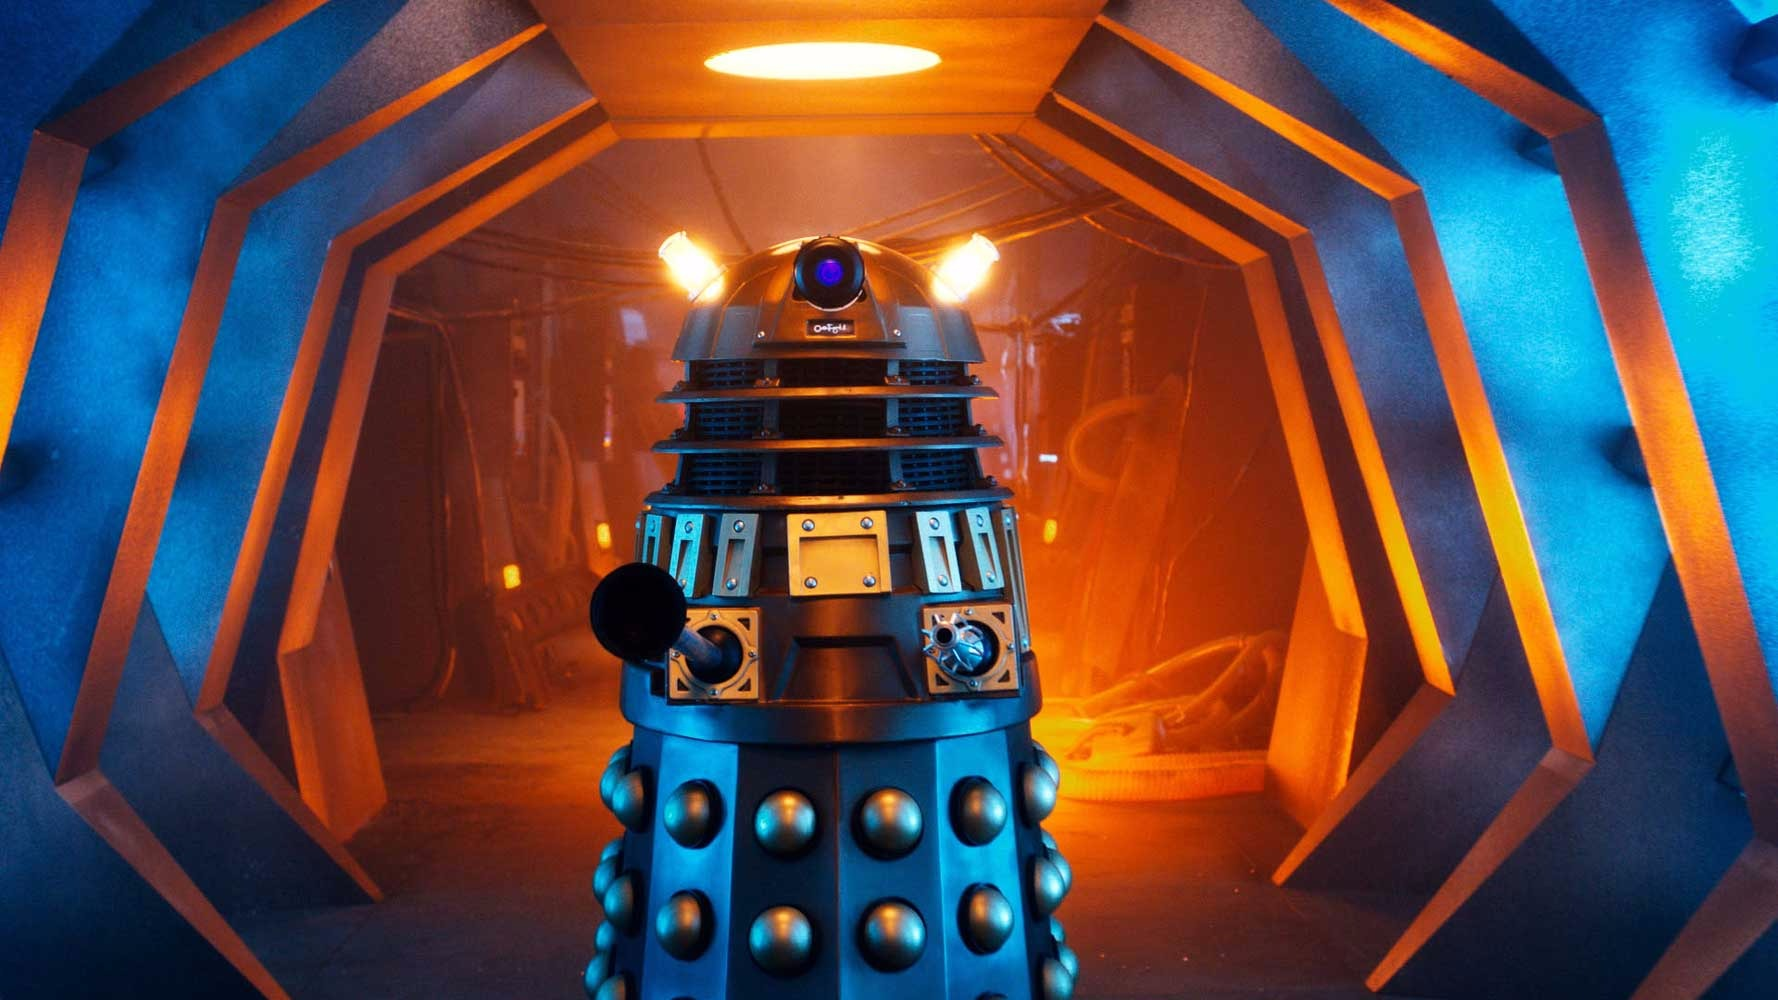 Dalek from Doctor Who Season 10, Episode 1